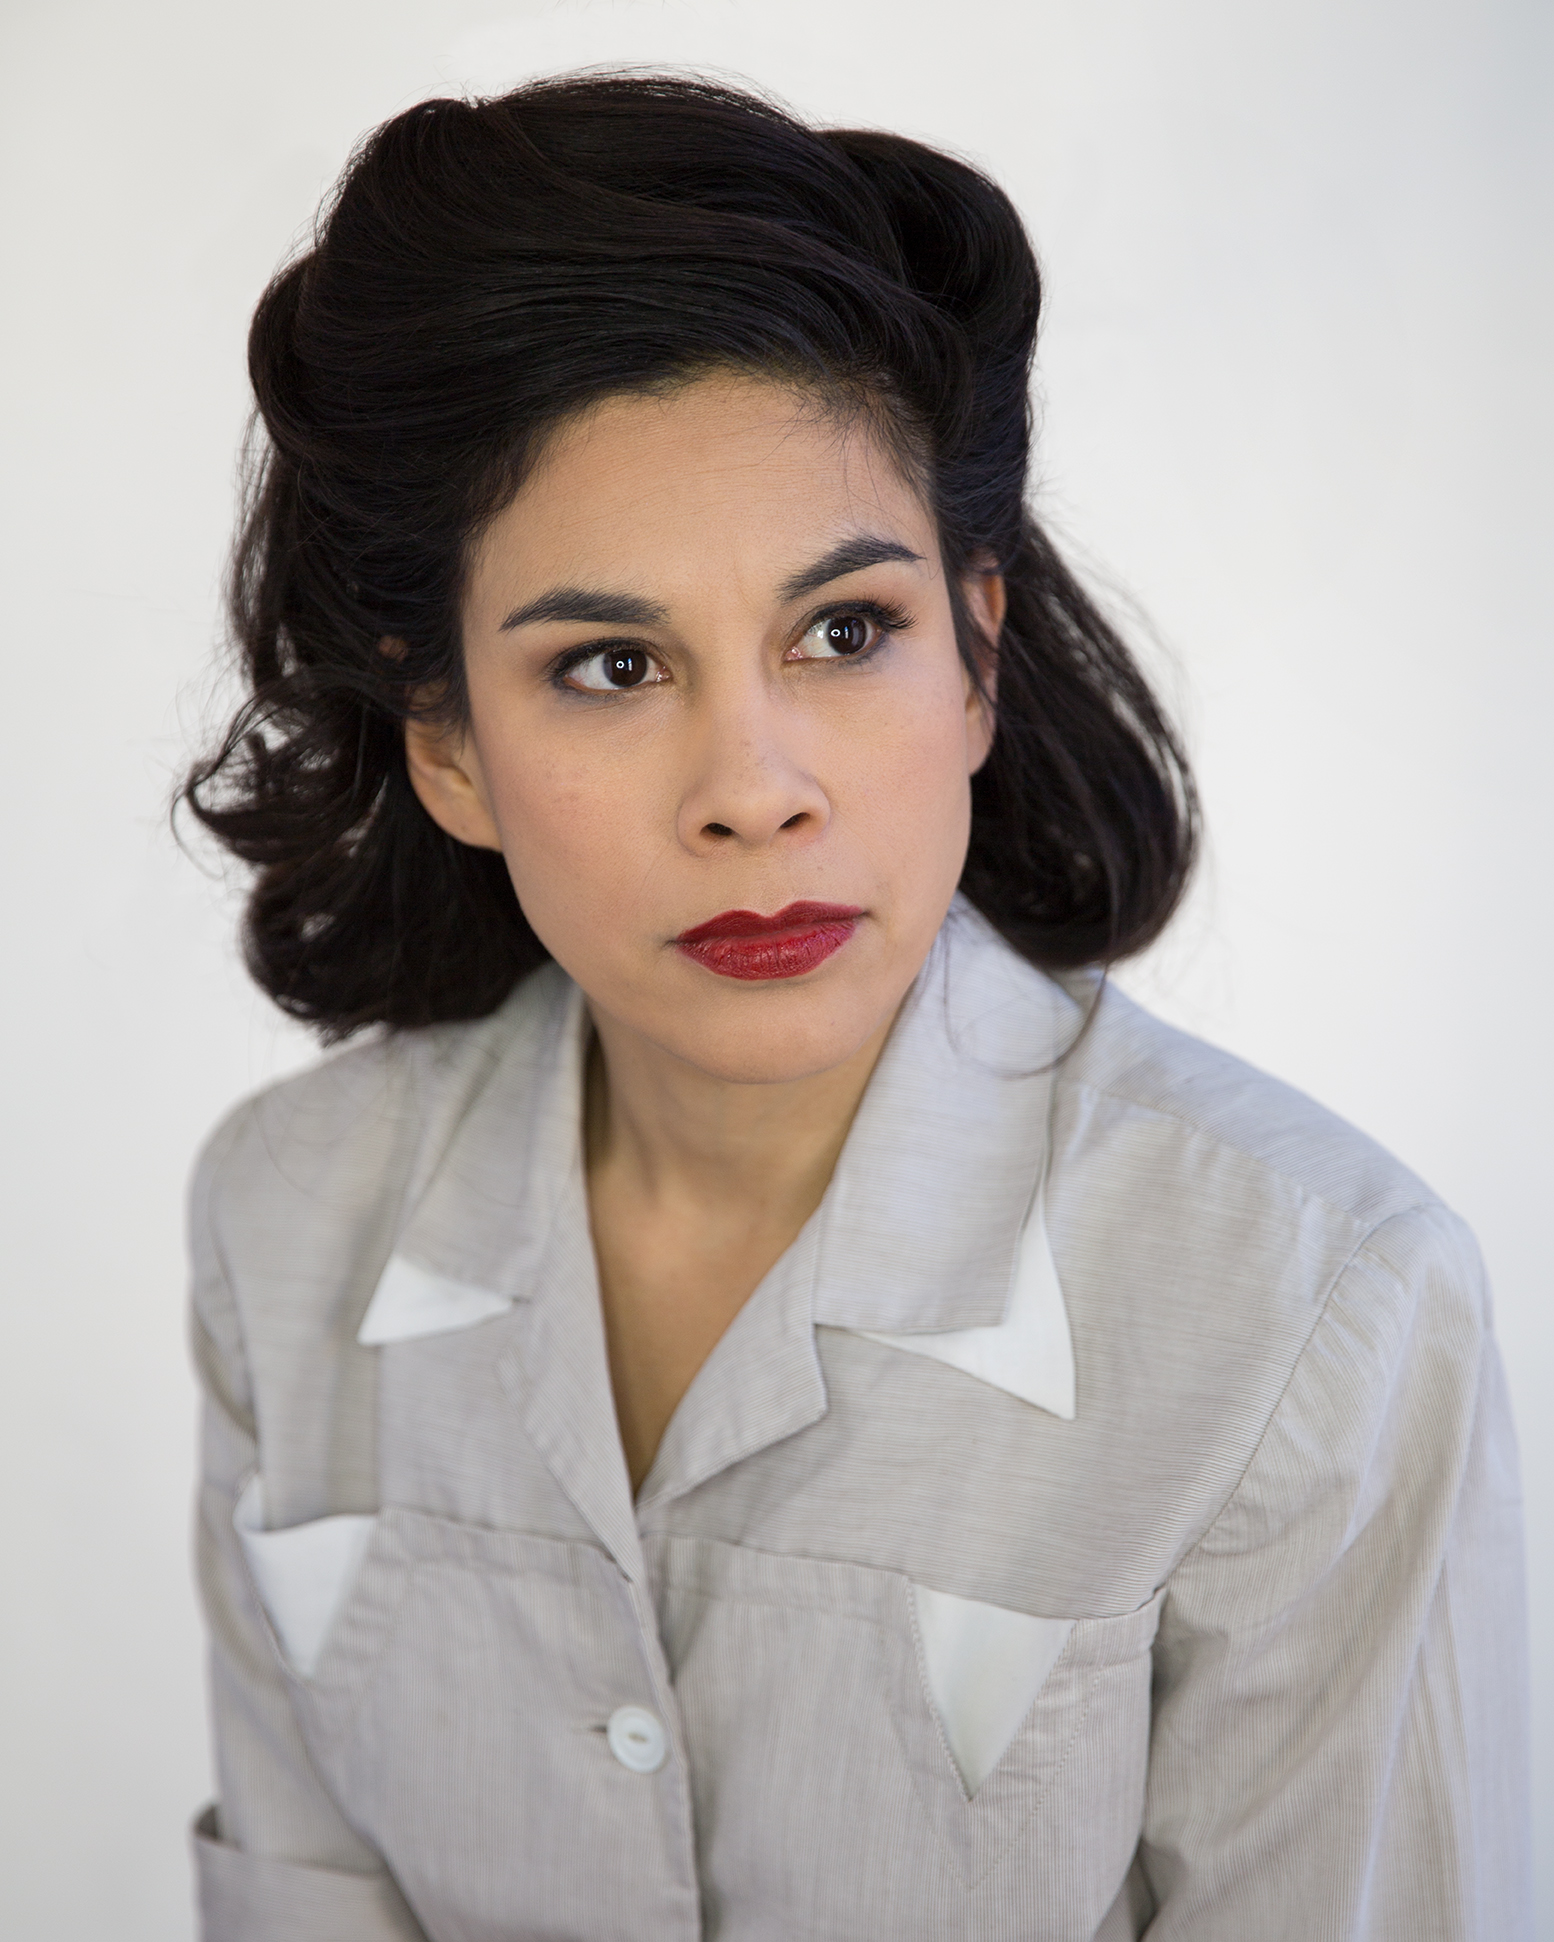 Diana Sofia-Estrada as María Chinchilla Recinos